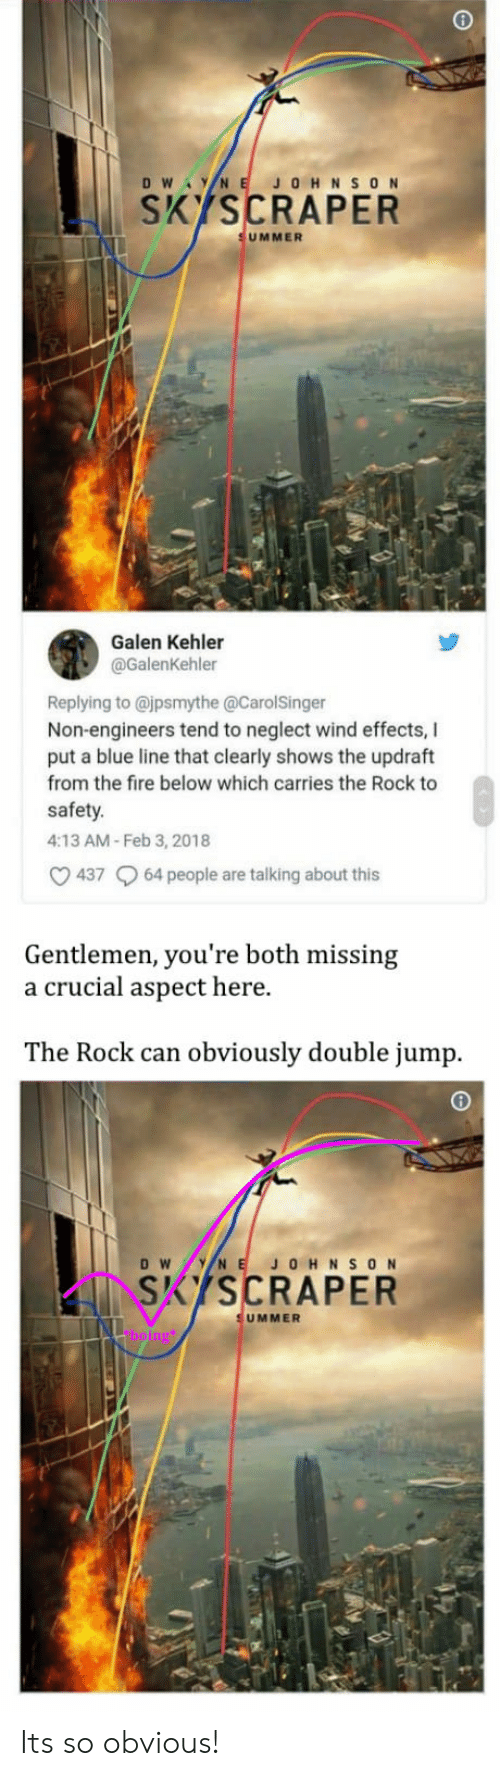 Fire, The Rock, and Blue: KSCRAPER  UMMER  Galen Kehler  @GalenKehler  Replying to @jpsmythe @CarolSinger  Non-engineers tend to neglect wind effects, l  put a blue line that clearly shows the updraft  from the fire below which carries the Rock to  safety.  4:13 AM- Feb 3, 2018  437 64 people are talking about this  Gentlemen, you're both missing  a crucial aspect here.  The Rock can obviously double jump.  SKISCRAPER  UMMER Its so obvious!